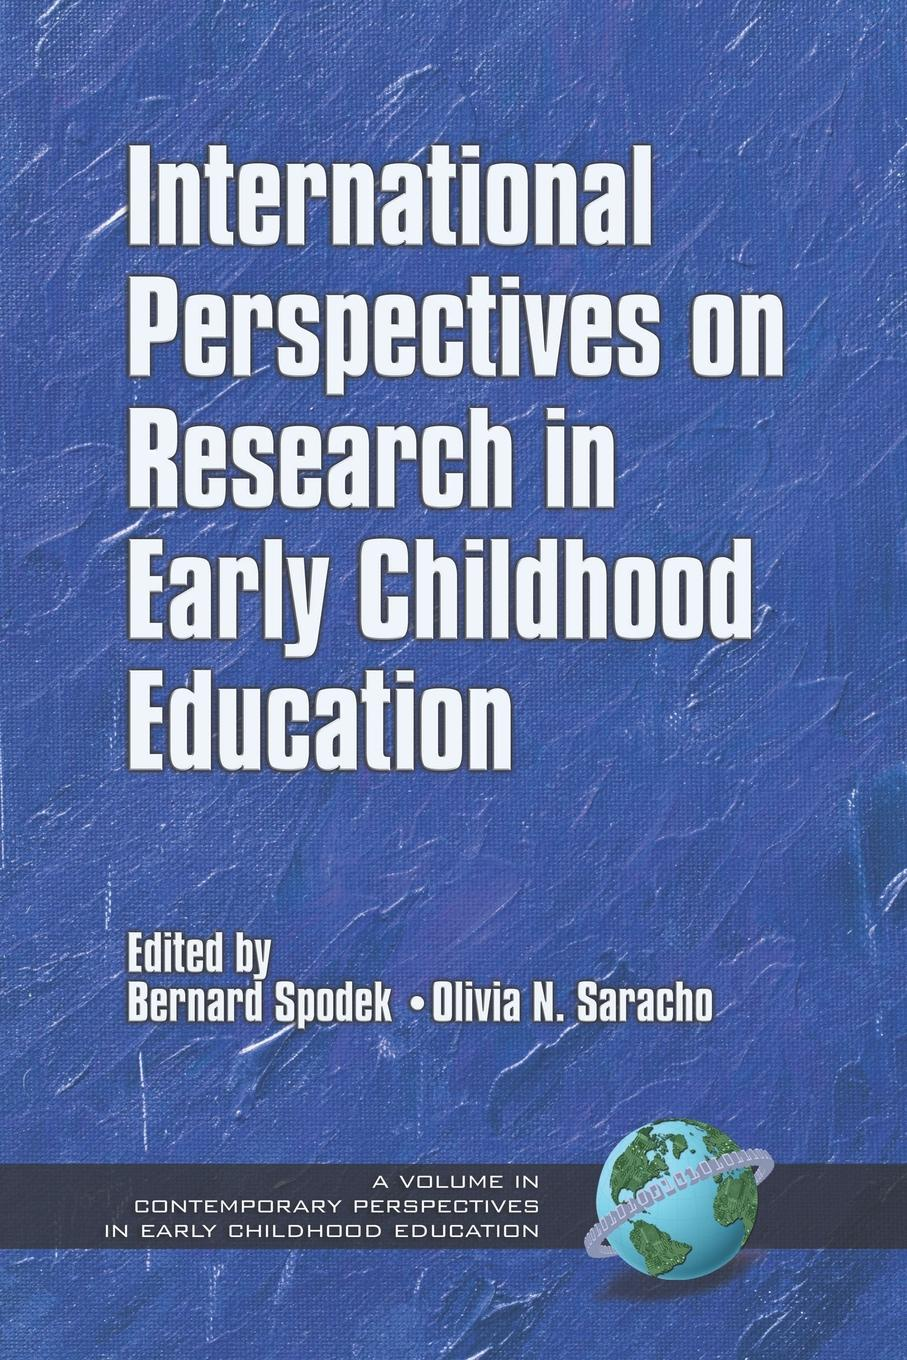 International Perspectives on Research in Early Childhood Education (PB) contemporary perspectives on science and technology in early childhood education pb